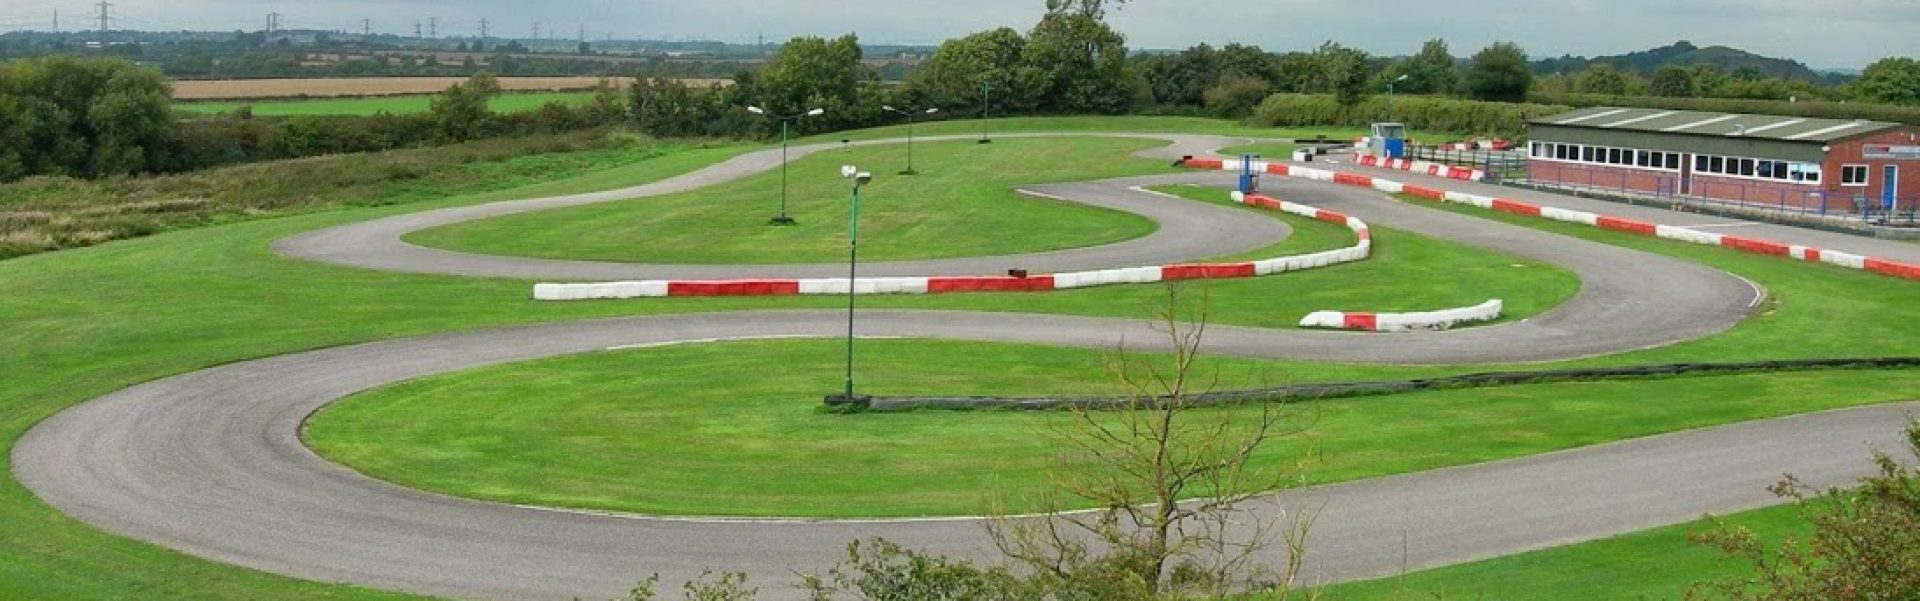 Sutton Circuit